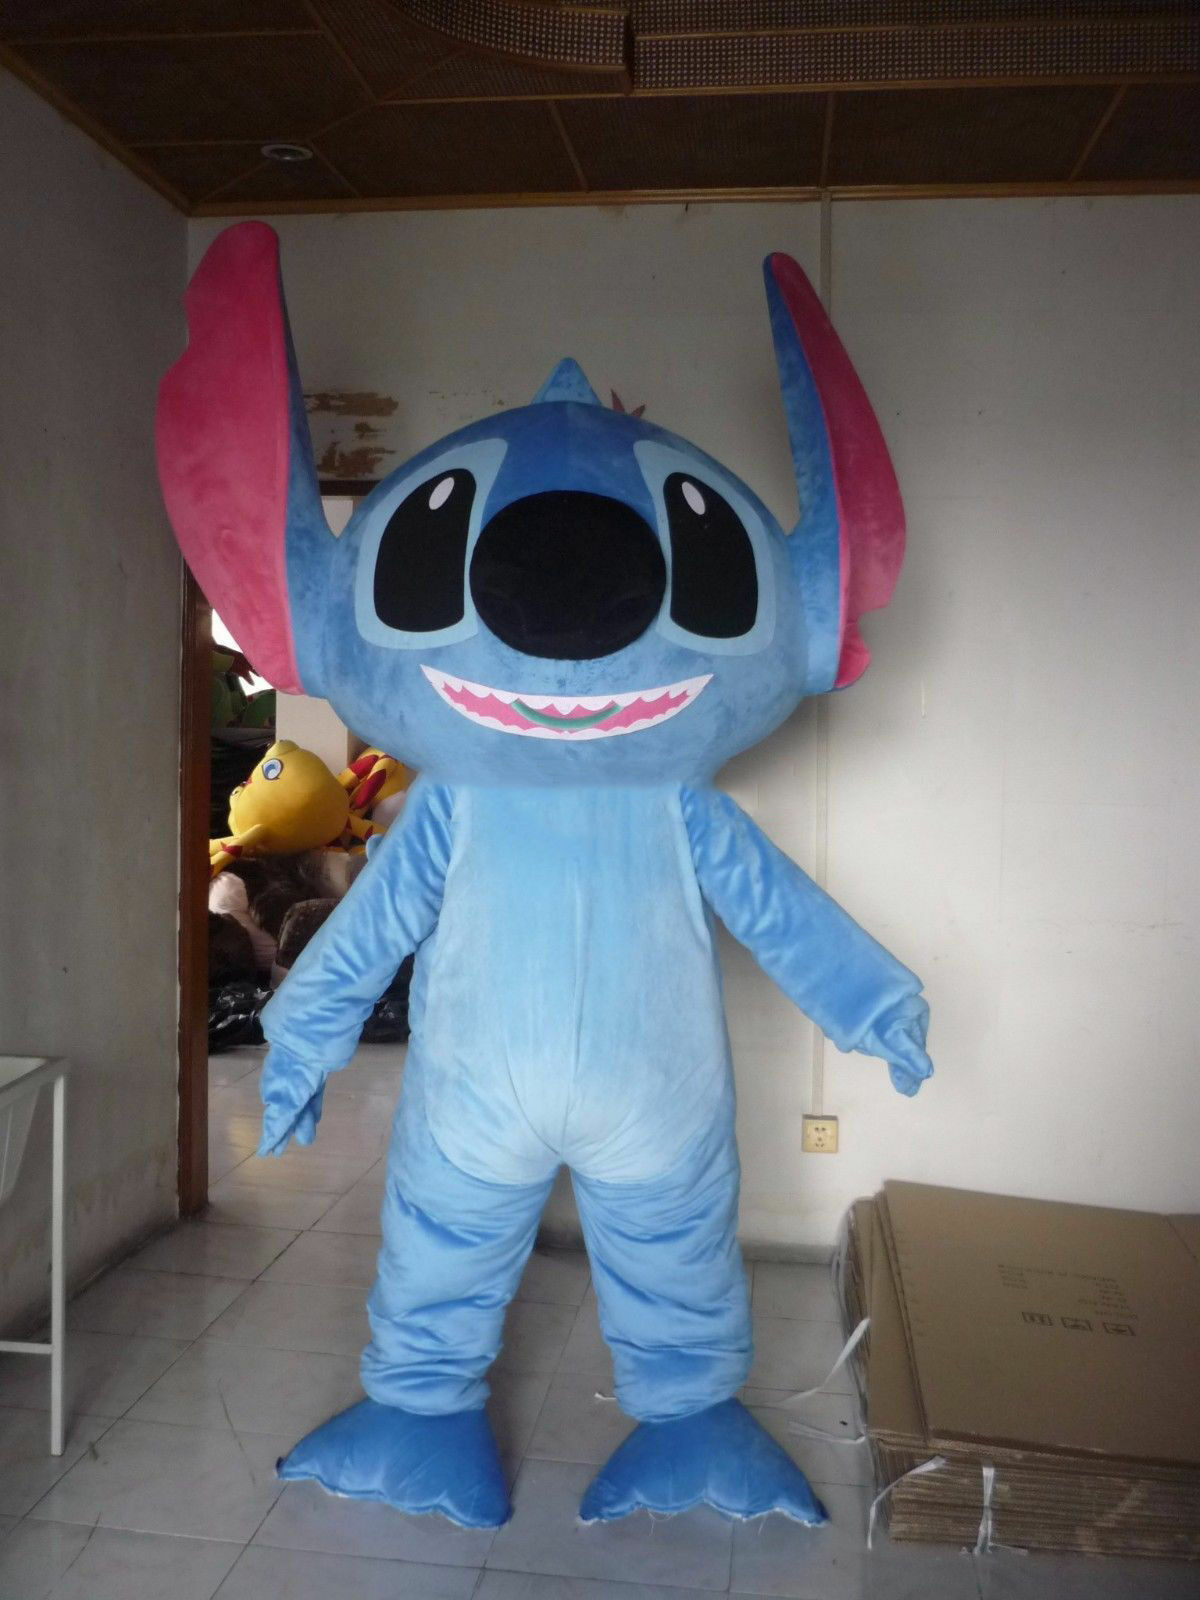 Stitch Of Lilo Stitch Mascot Costume Halloween Party Game Dress Adults Outfit For Sale Online Ebay